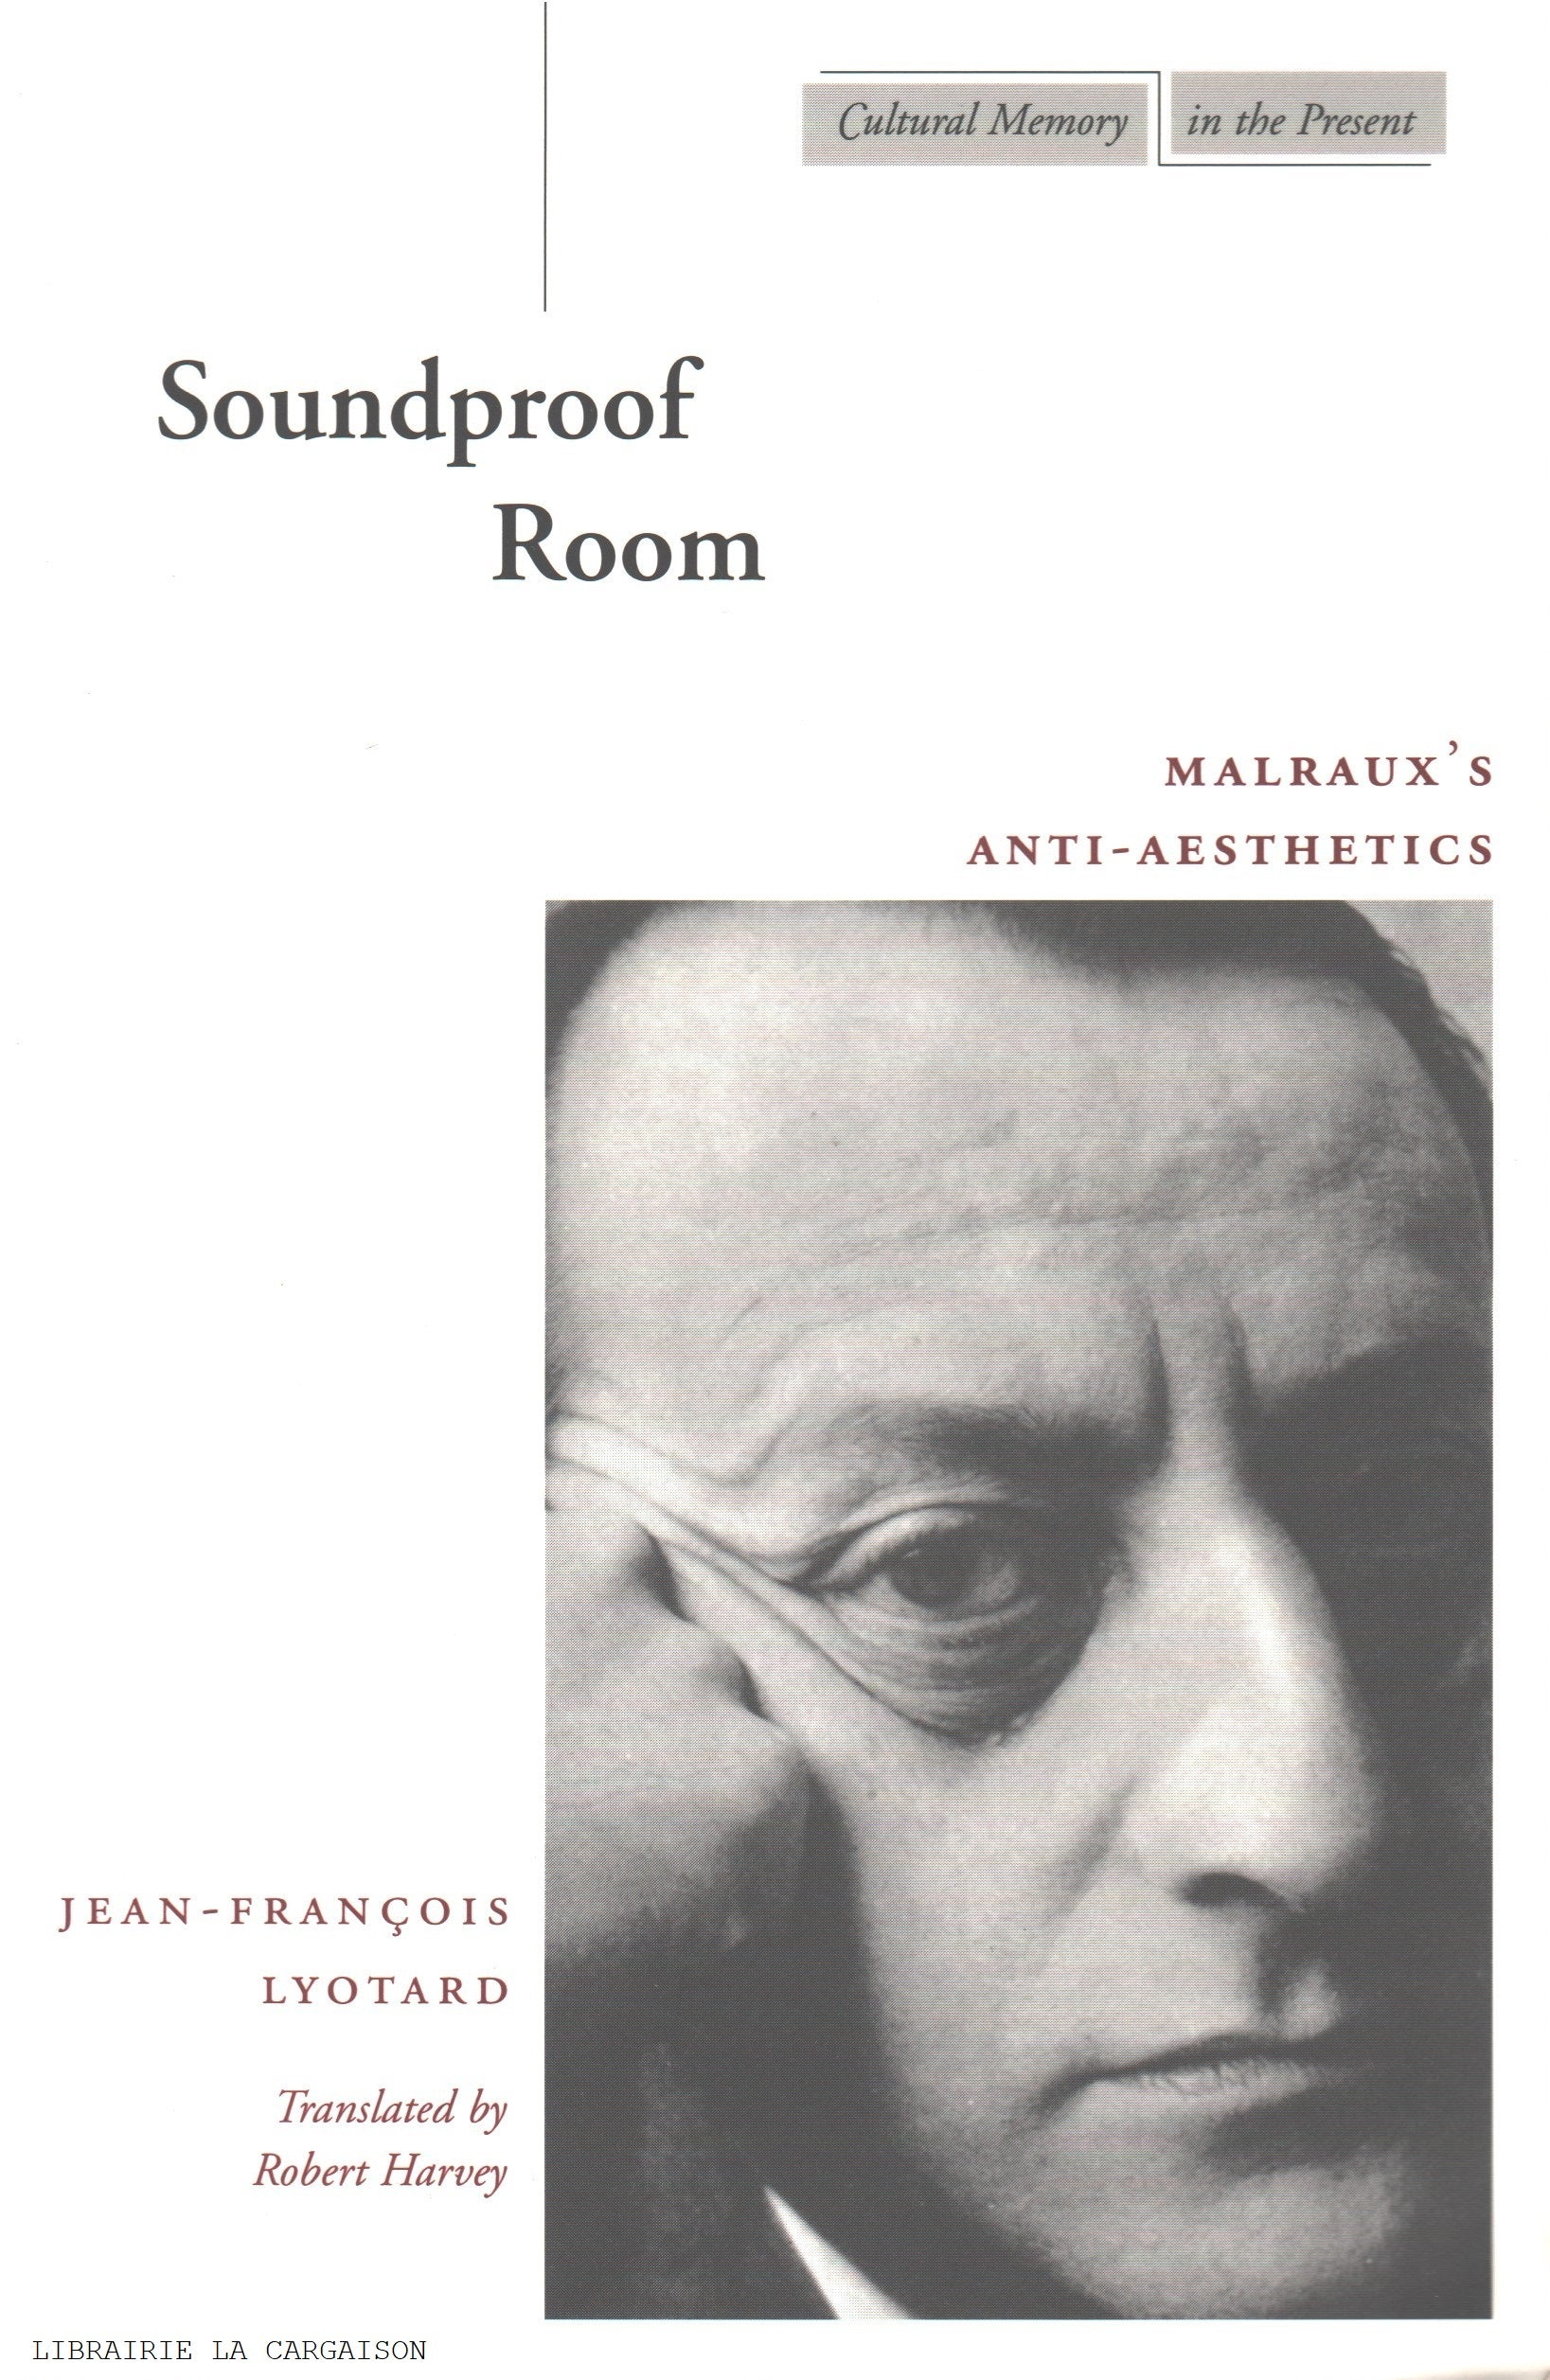 LYOTARD, JEAN-FRANÇOIS. Soundproof Room : Malraux's Anti-Aesthetics